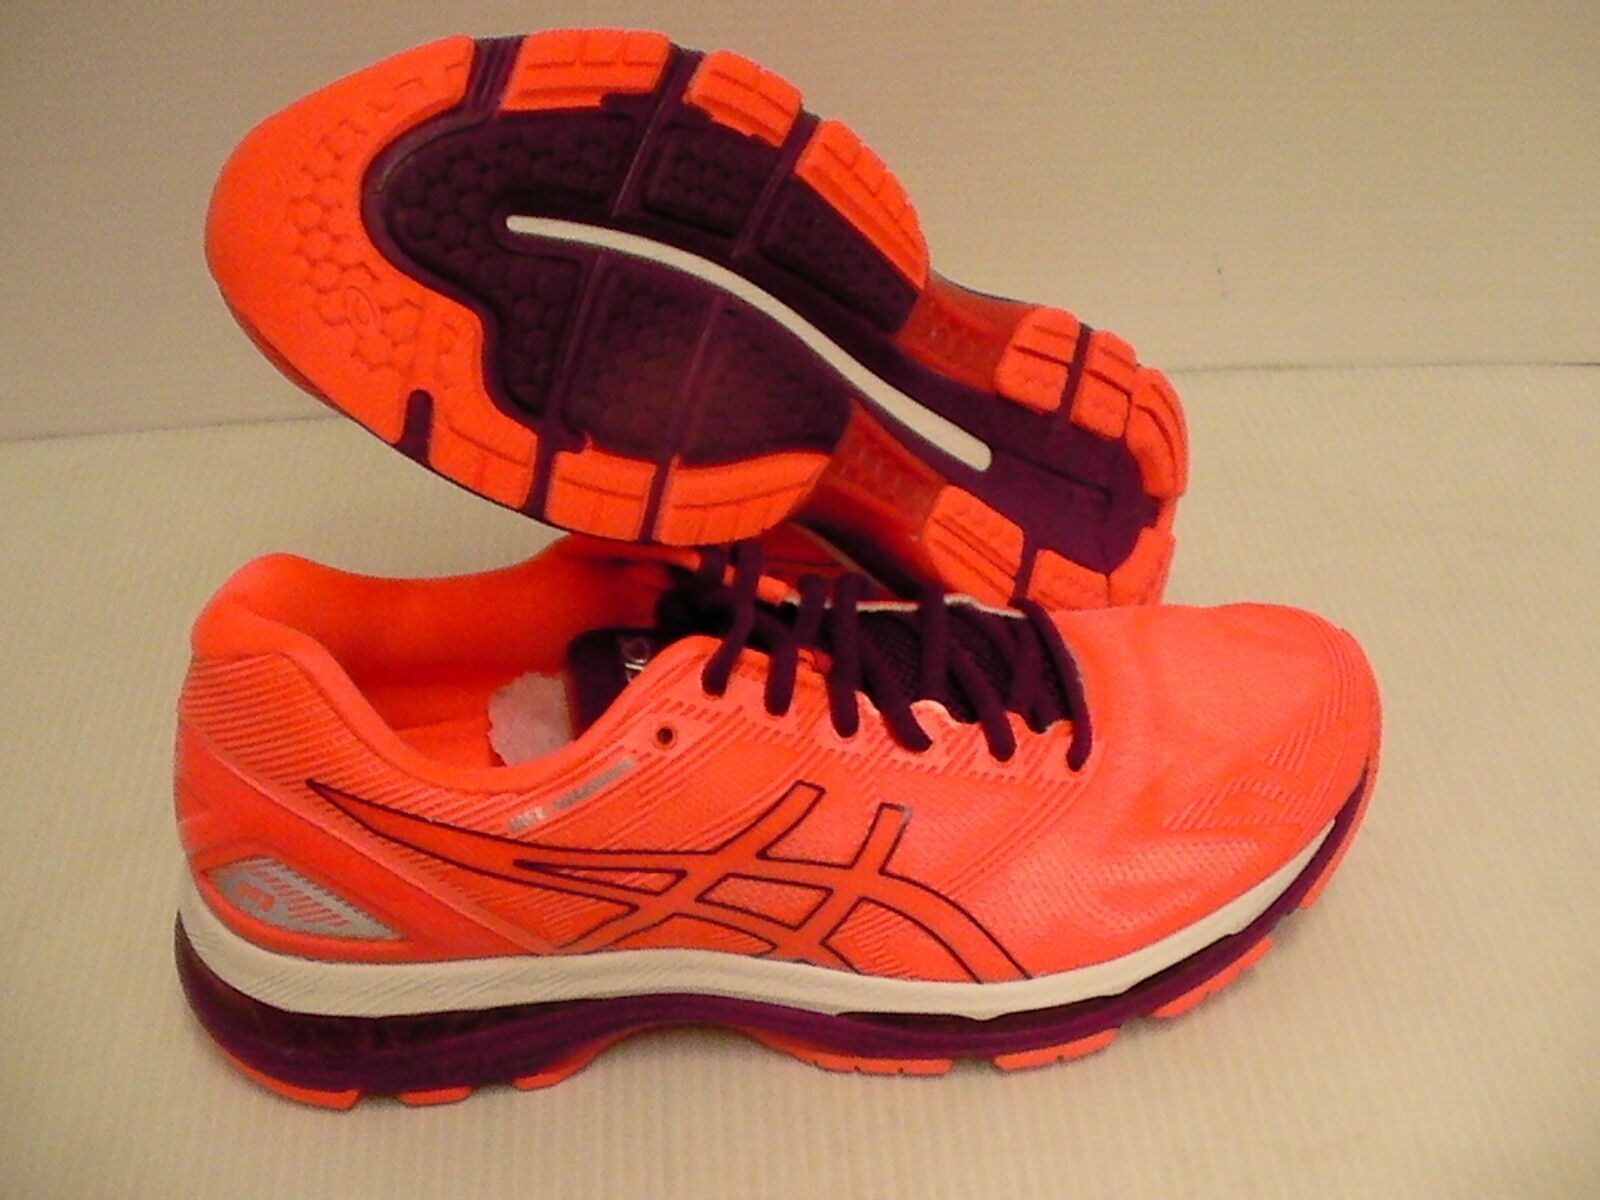 Asics womens gel nimbus 19 running shoes flash coral dark purple white size 7 Cheap women's shoes women's shoes